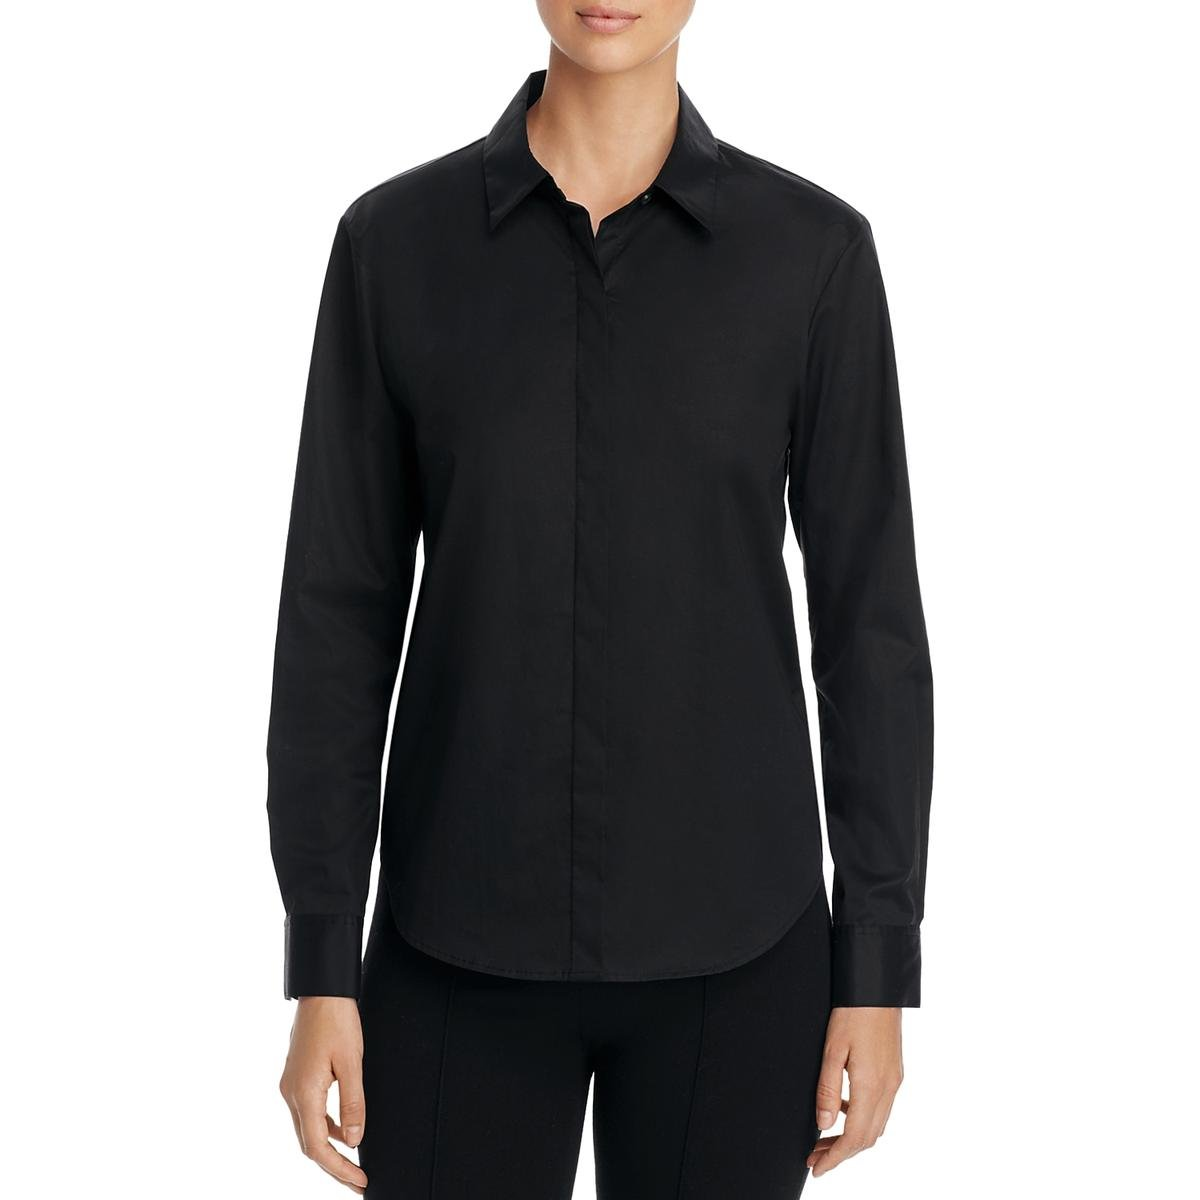 DKNY Womens Long Sleeve Collared Button-Down Top Black S